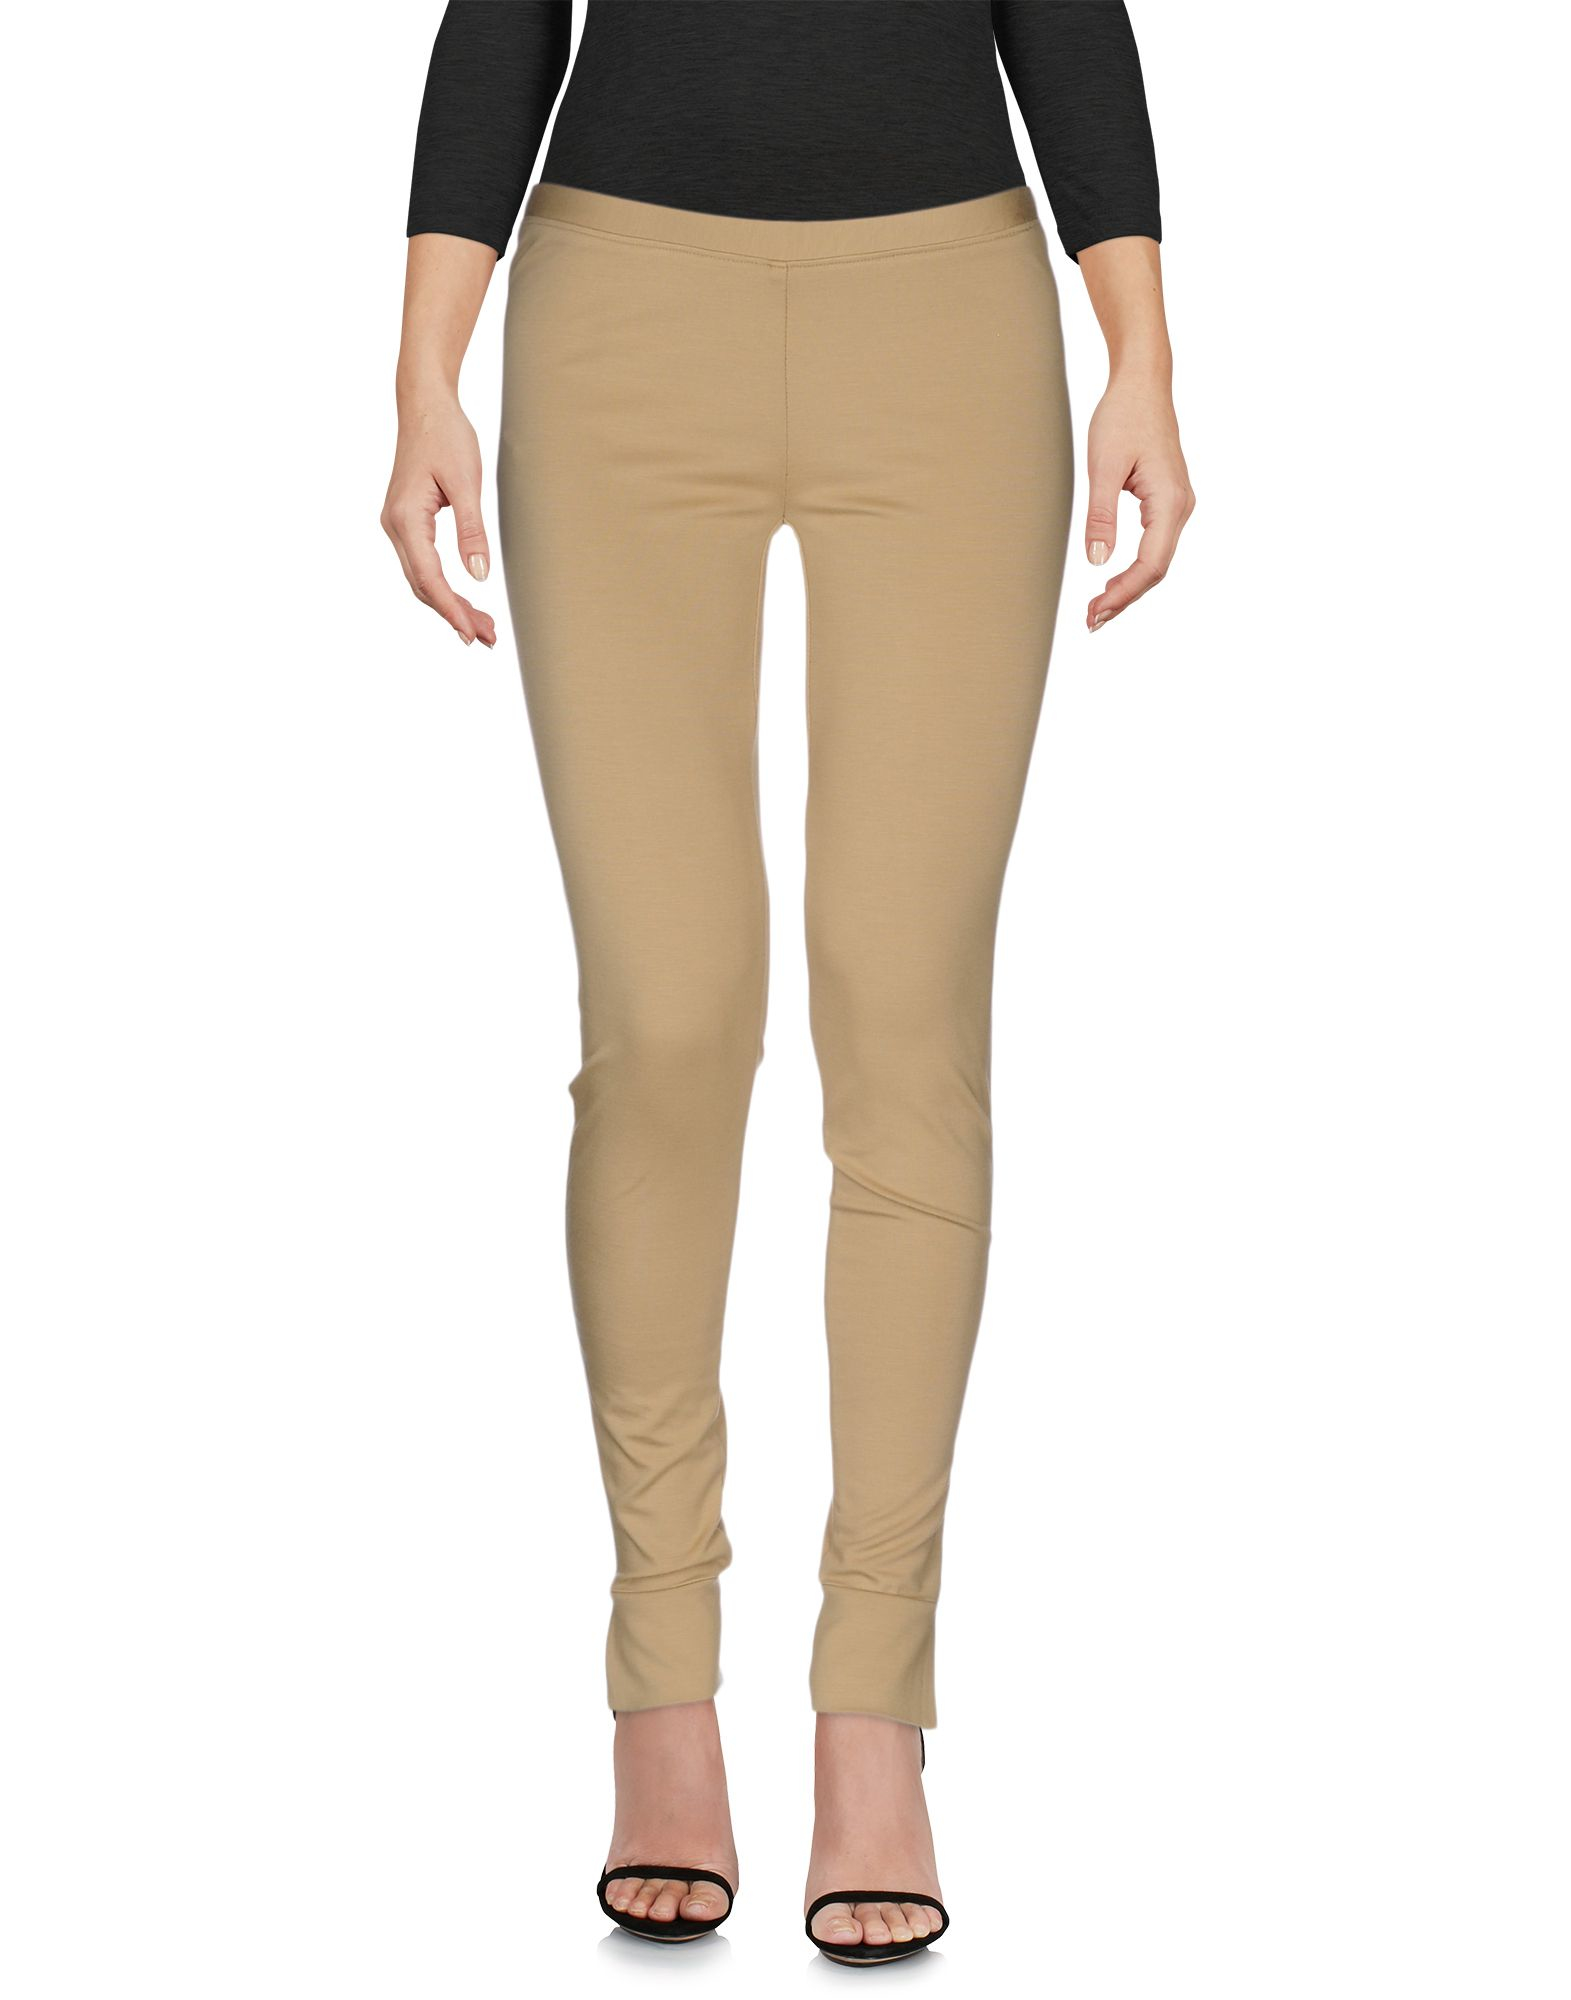 List Leggings in Beige (Sand)  Lyst